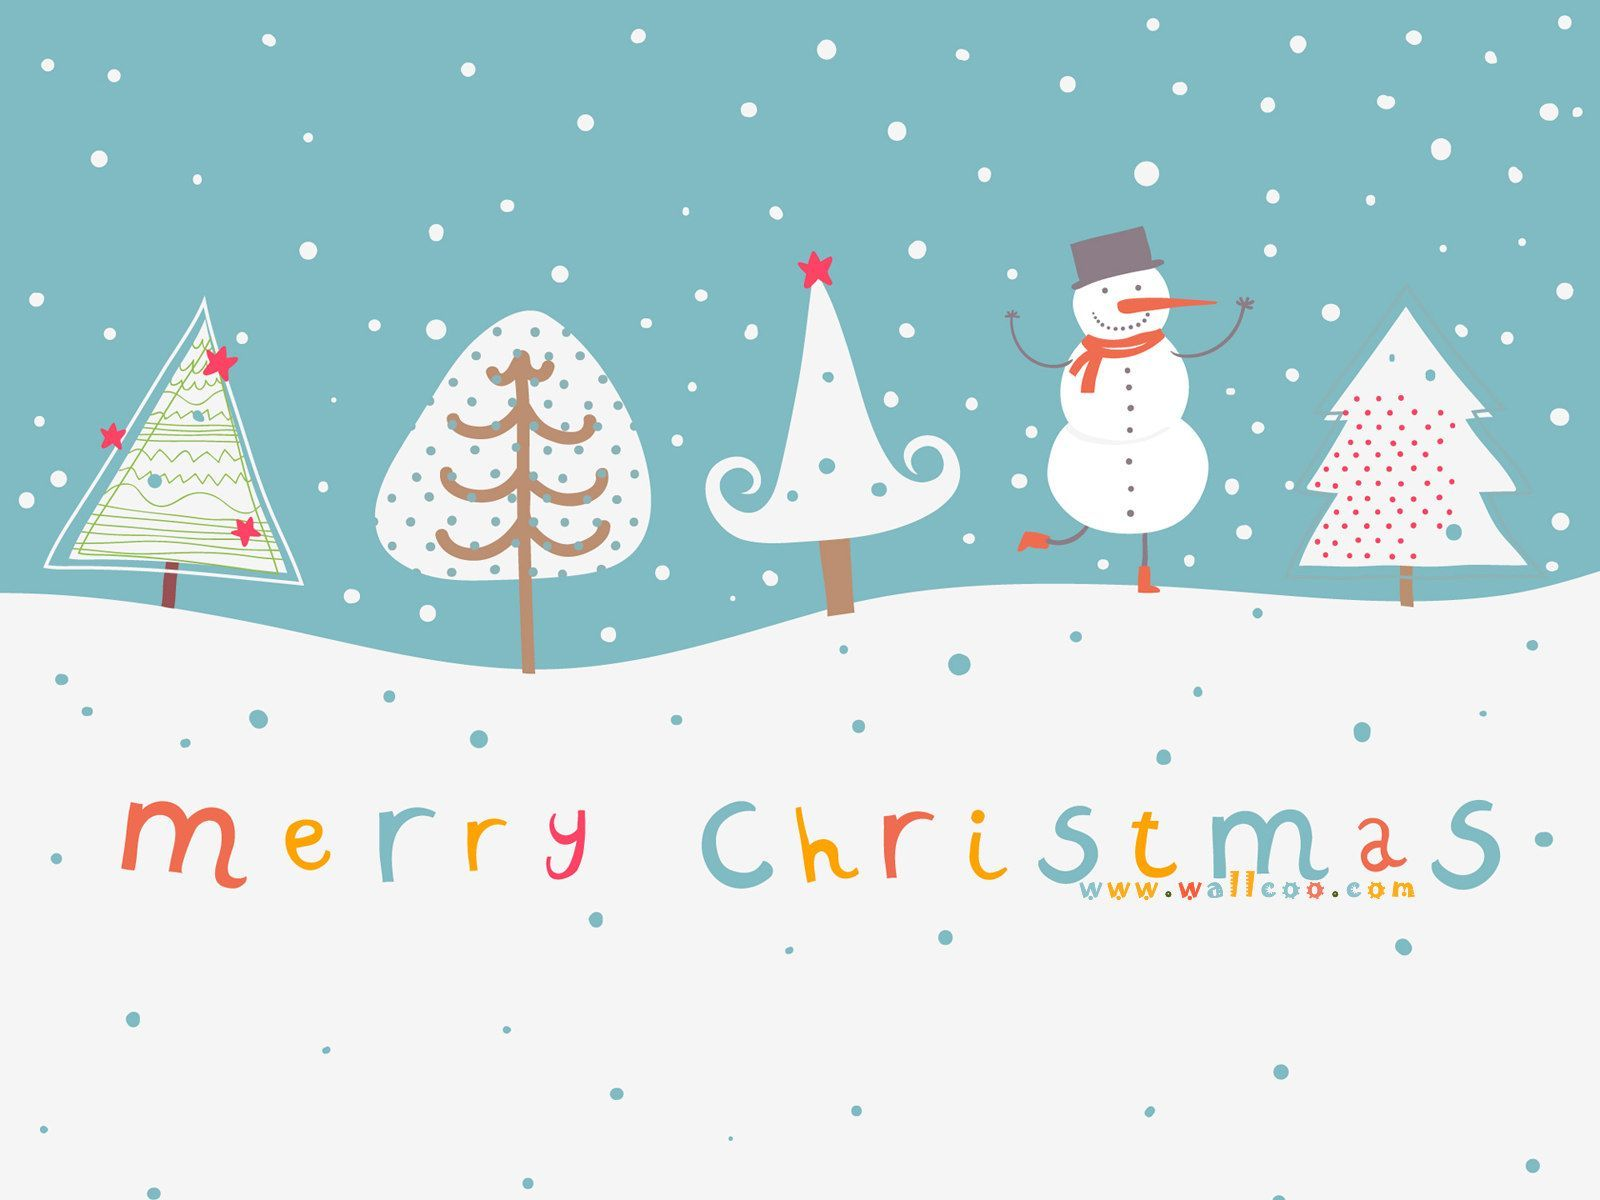 1600x1200 desktop-christmas-cute-backgrounds-dowload ...   Papers   Christmas ...